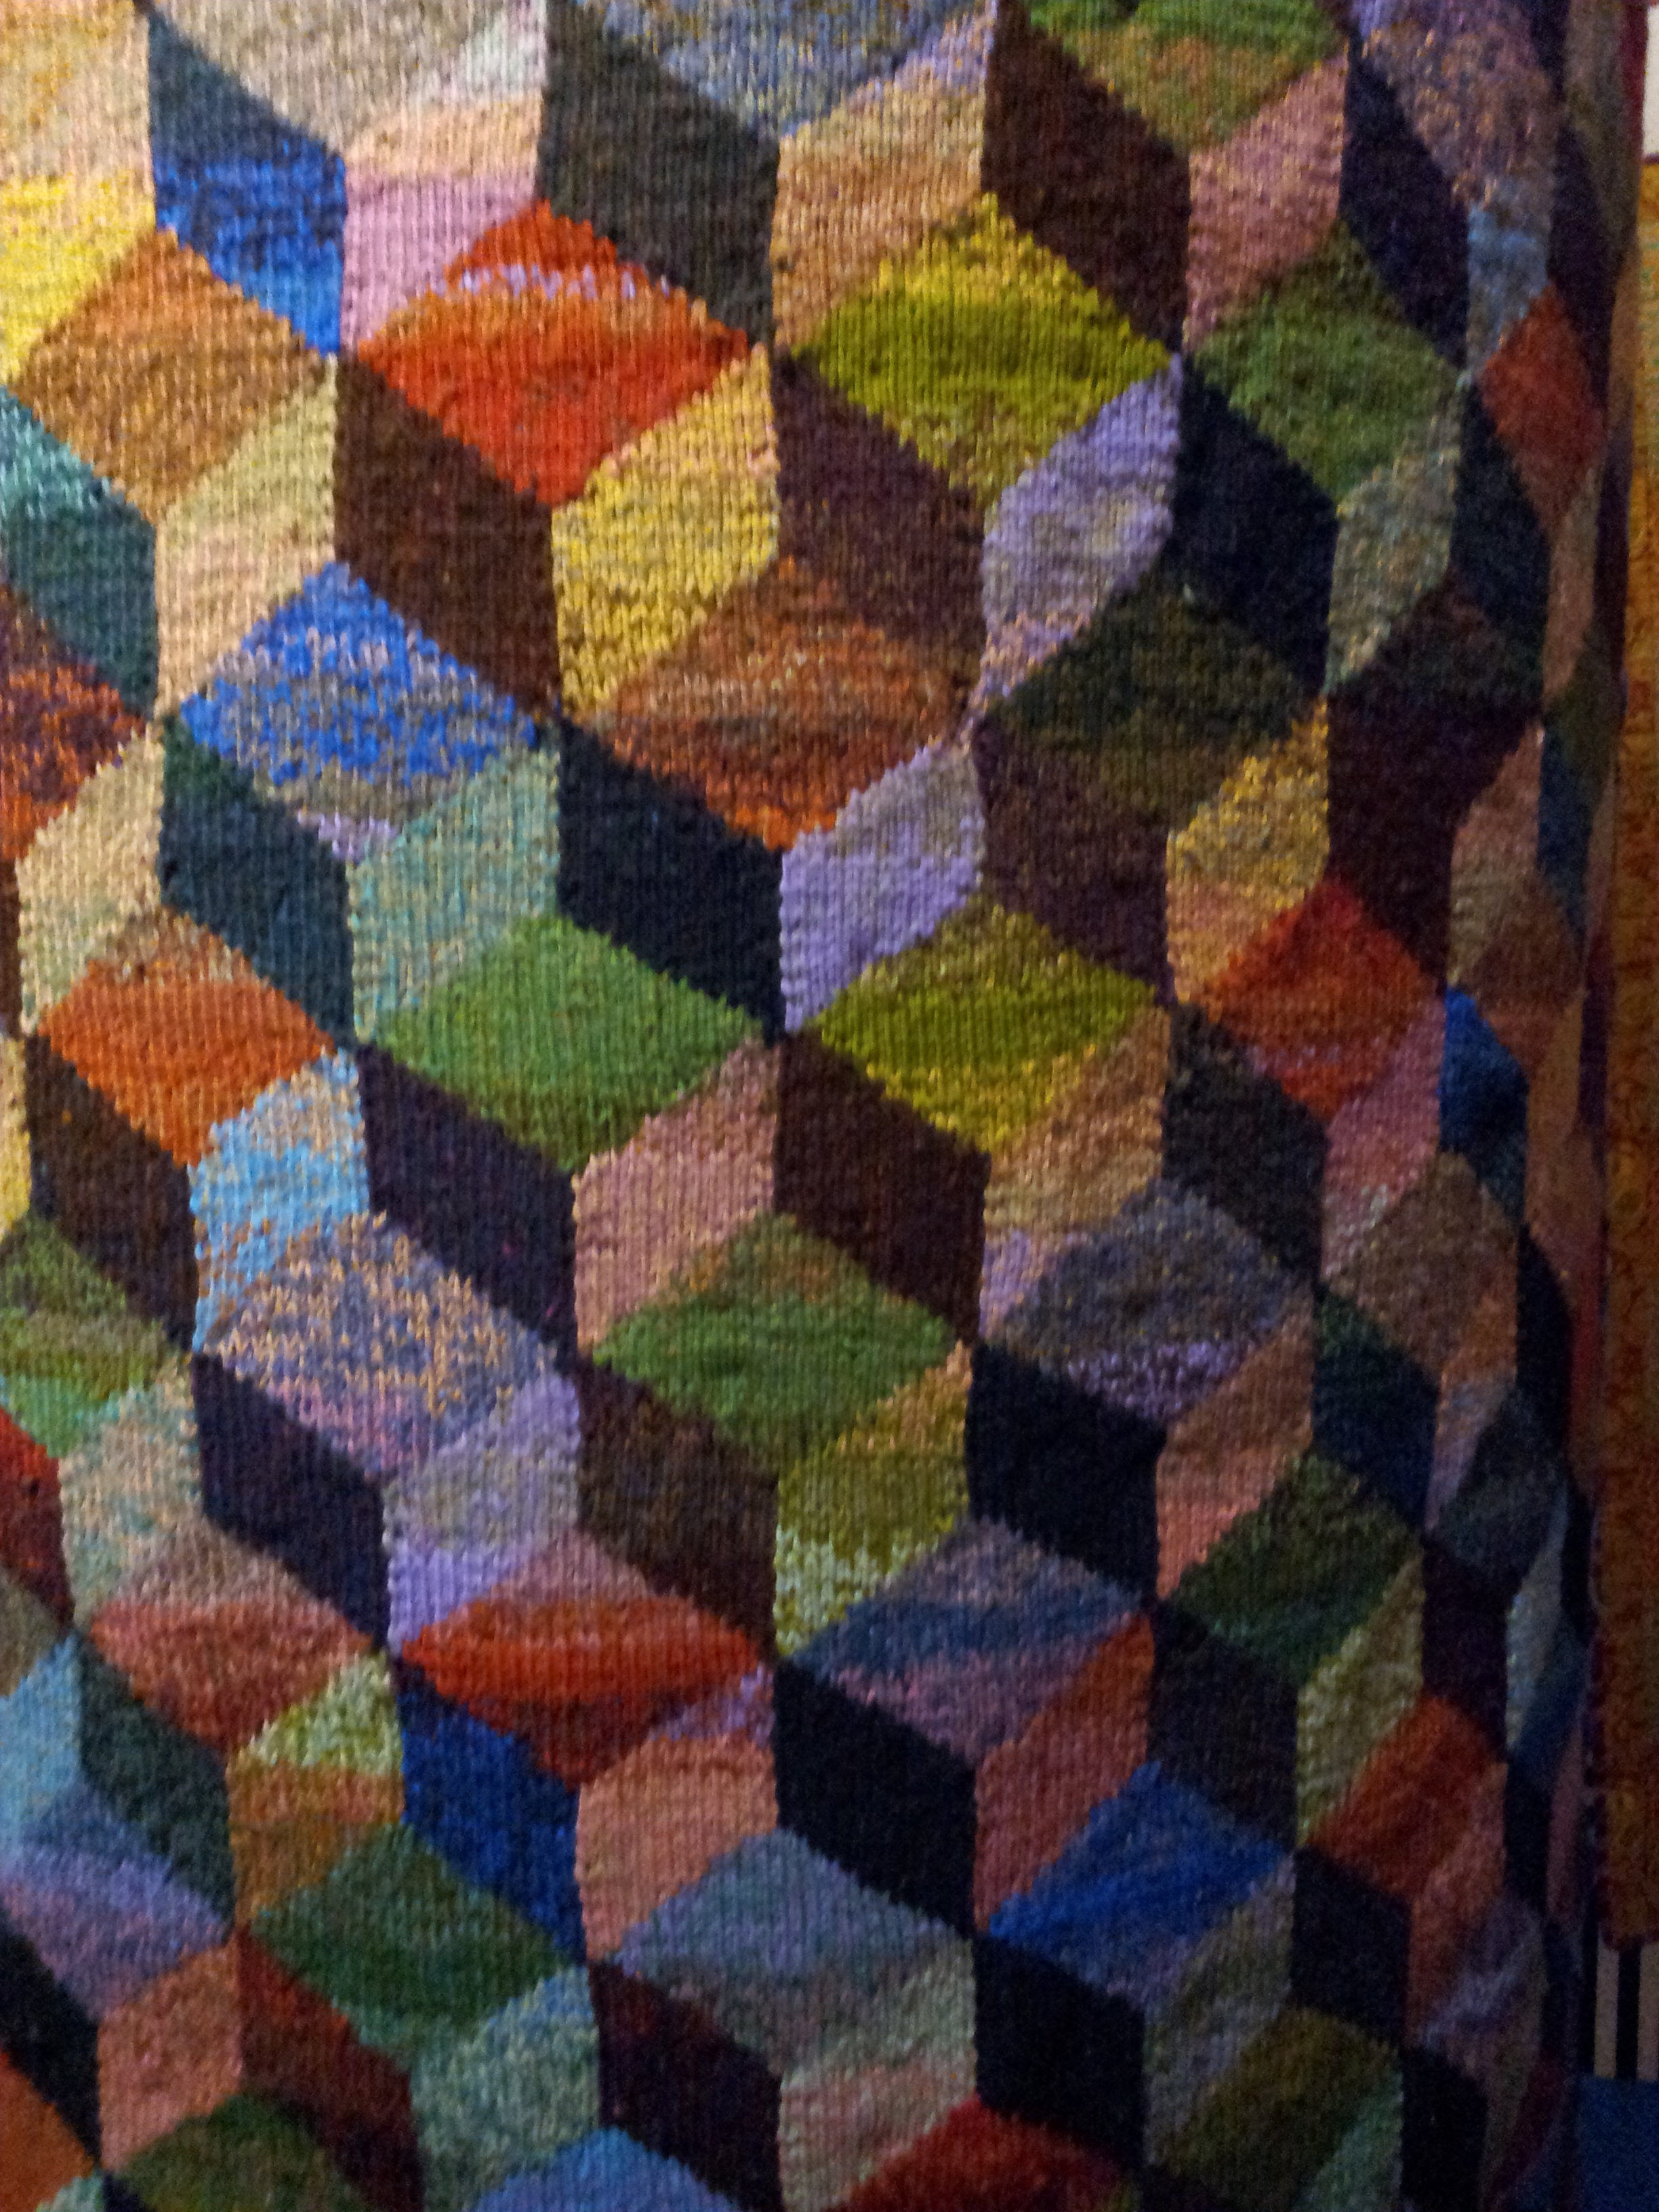 chair design inspiration gaming review kaffe fassett exhibition at fashion textiles museum, london | ali myers' blog